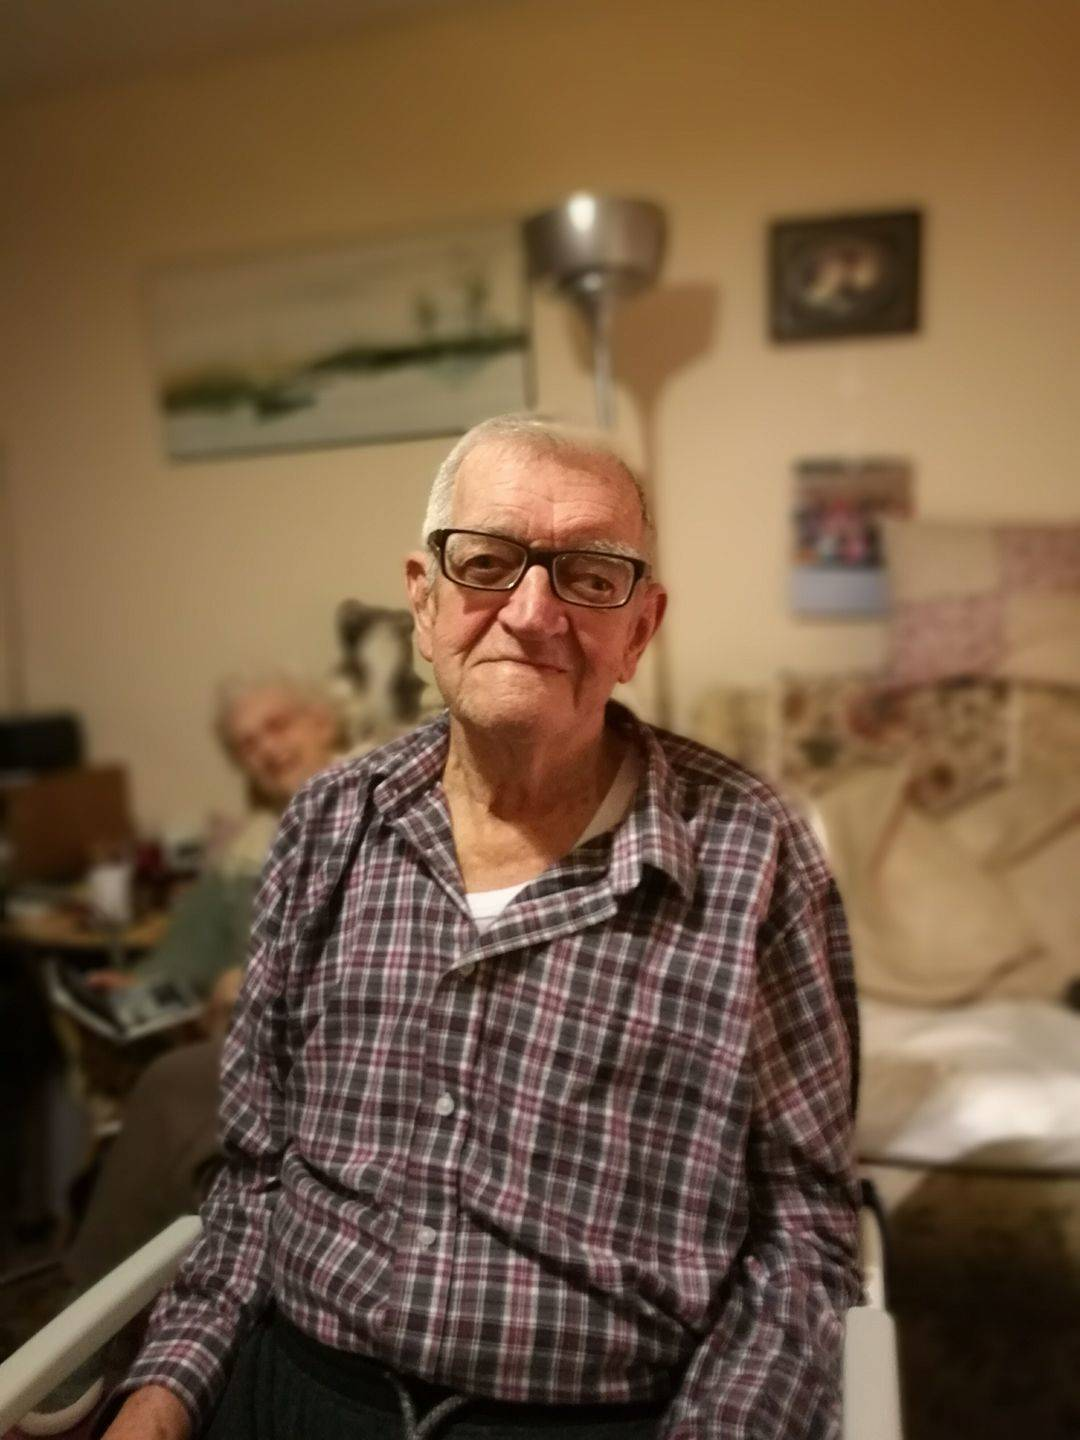 One of my favourite customers. He is 87 and can't get out so I regularly make house visits to keep him looking dappa!